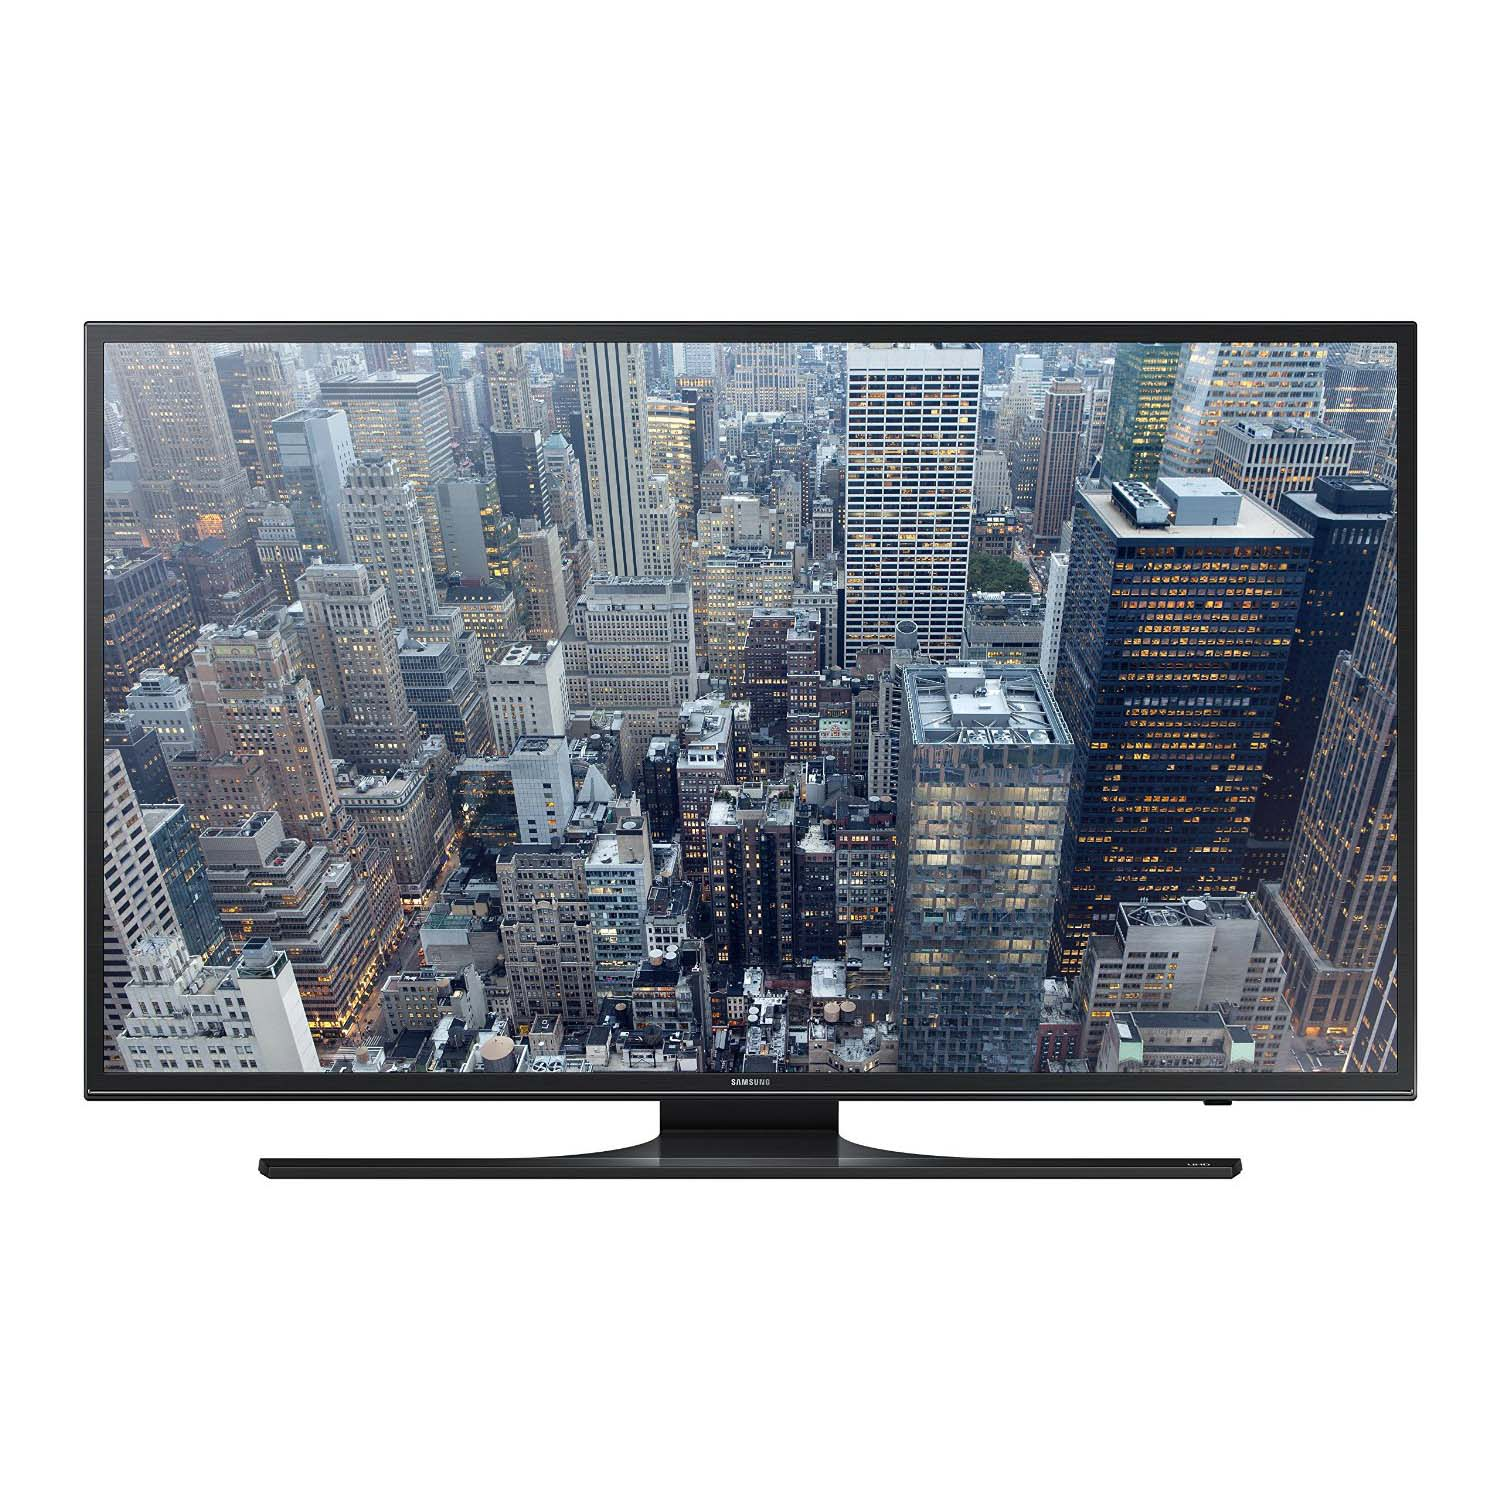 Samsung UN65JU6500 65-Inch 4K Ultra HD Smart LED TV (2015 Model) *관부가세 별도*